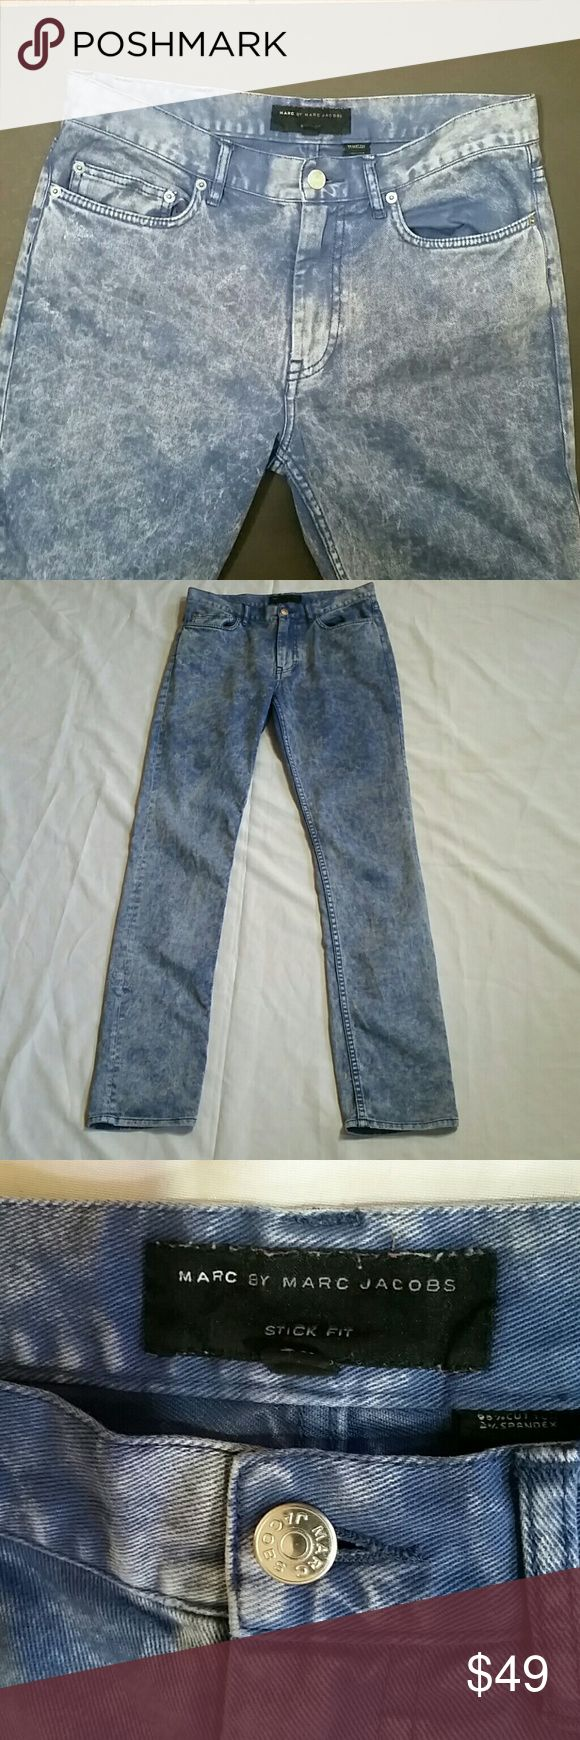 TALL Marc Jacobs Stick Fit Jeans sz 30 x 34 For my Tall curvy Chicas These accentuate and contours nicely Acid Wash 98% cotton 2%spandex  Waist 30  Inseam 34 Marc by Marc Jacobs Jeans Skinny